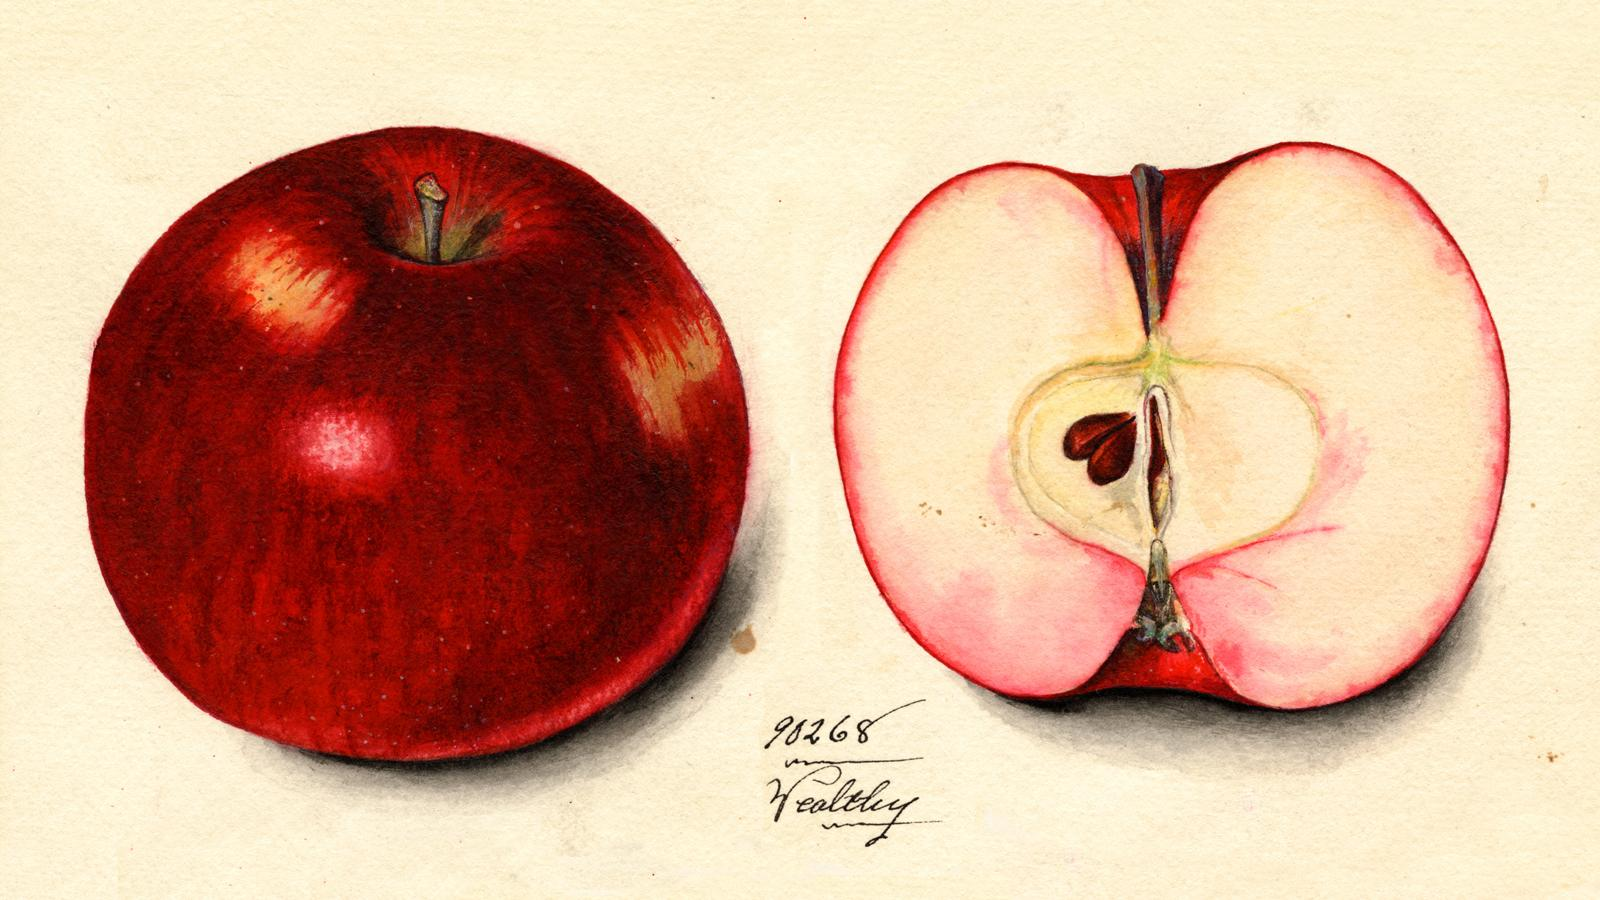 illustration of wealthy delicious apple